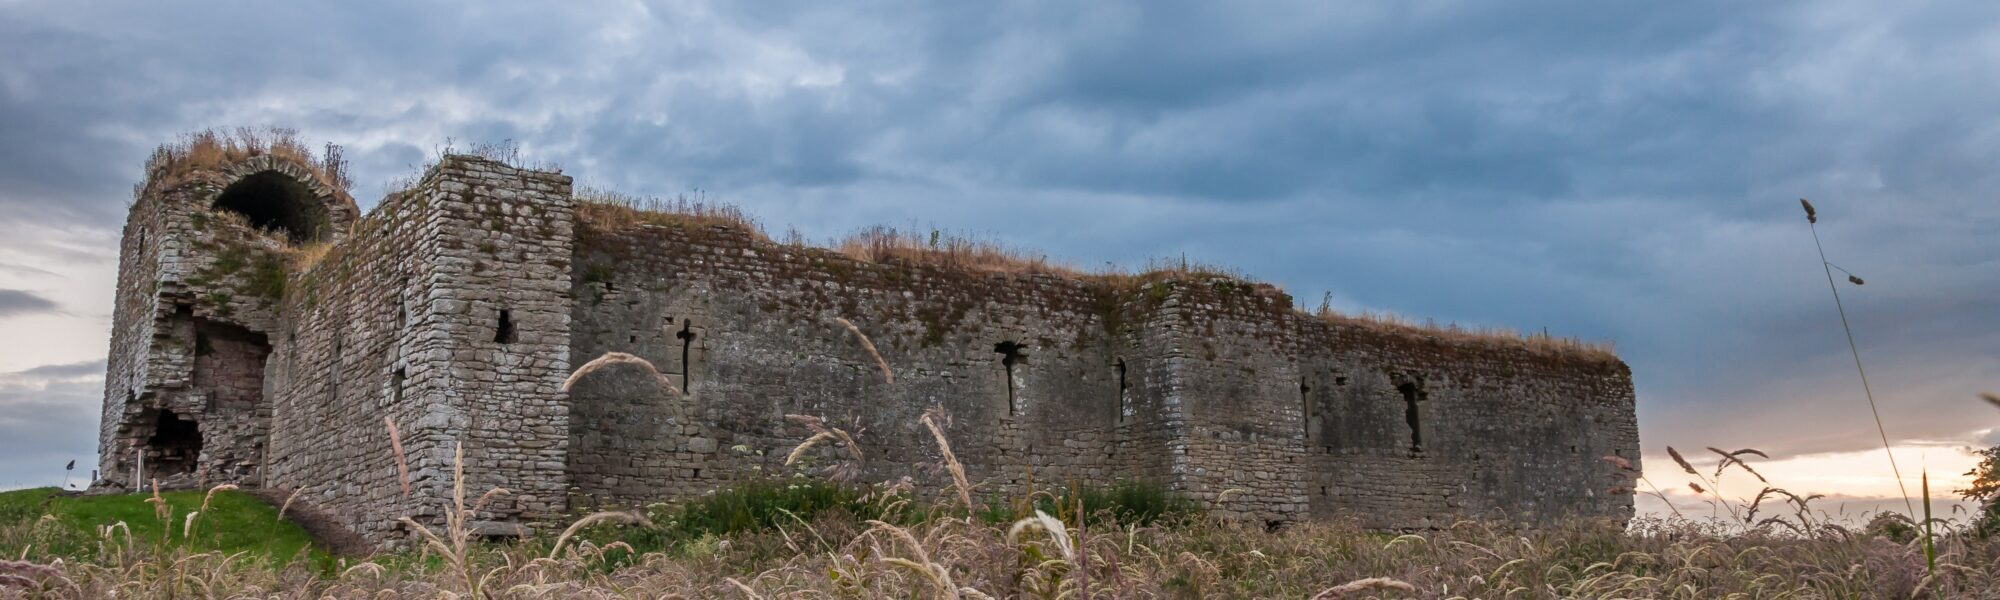 Le Ballymoon Castle – Poleary91 – cc